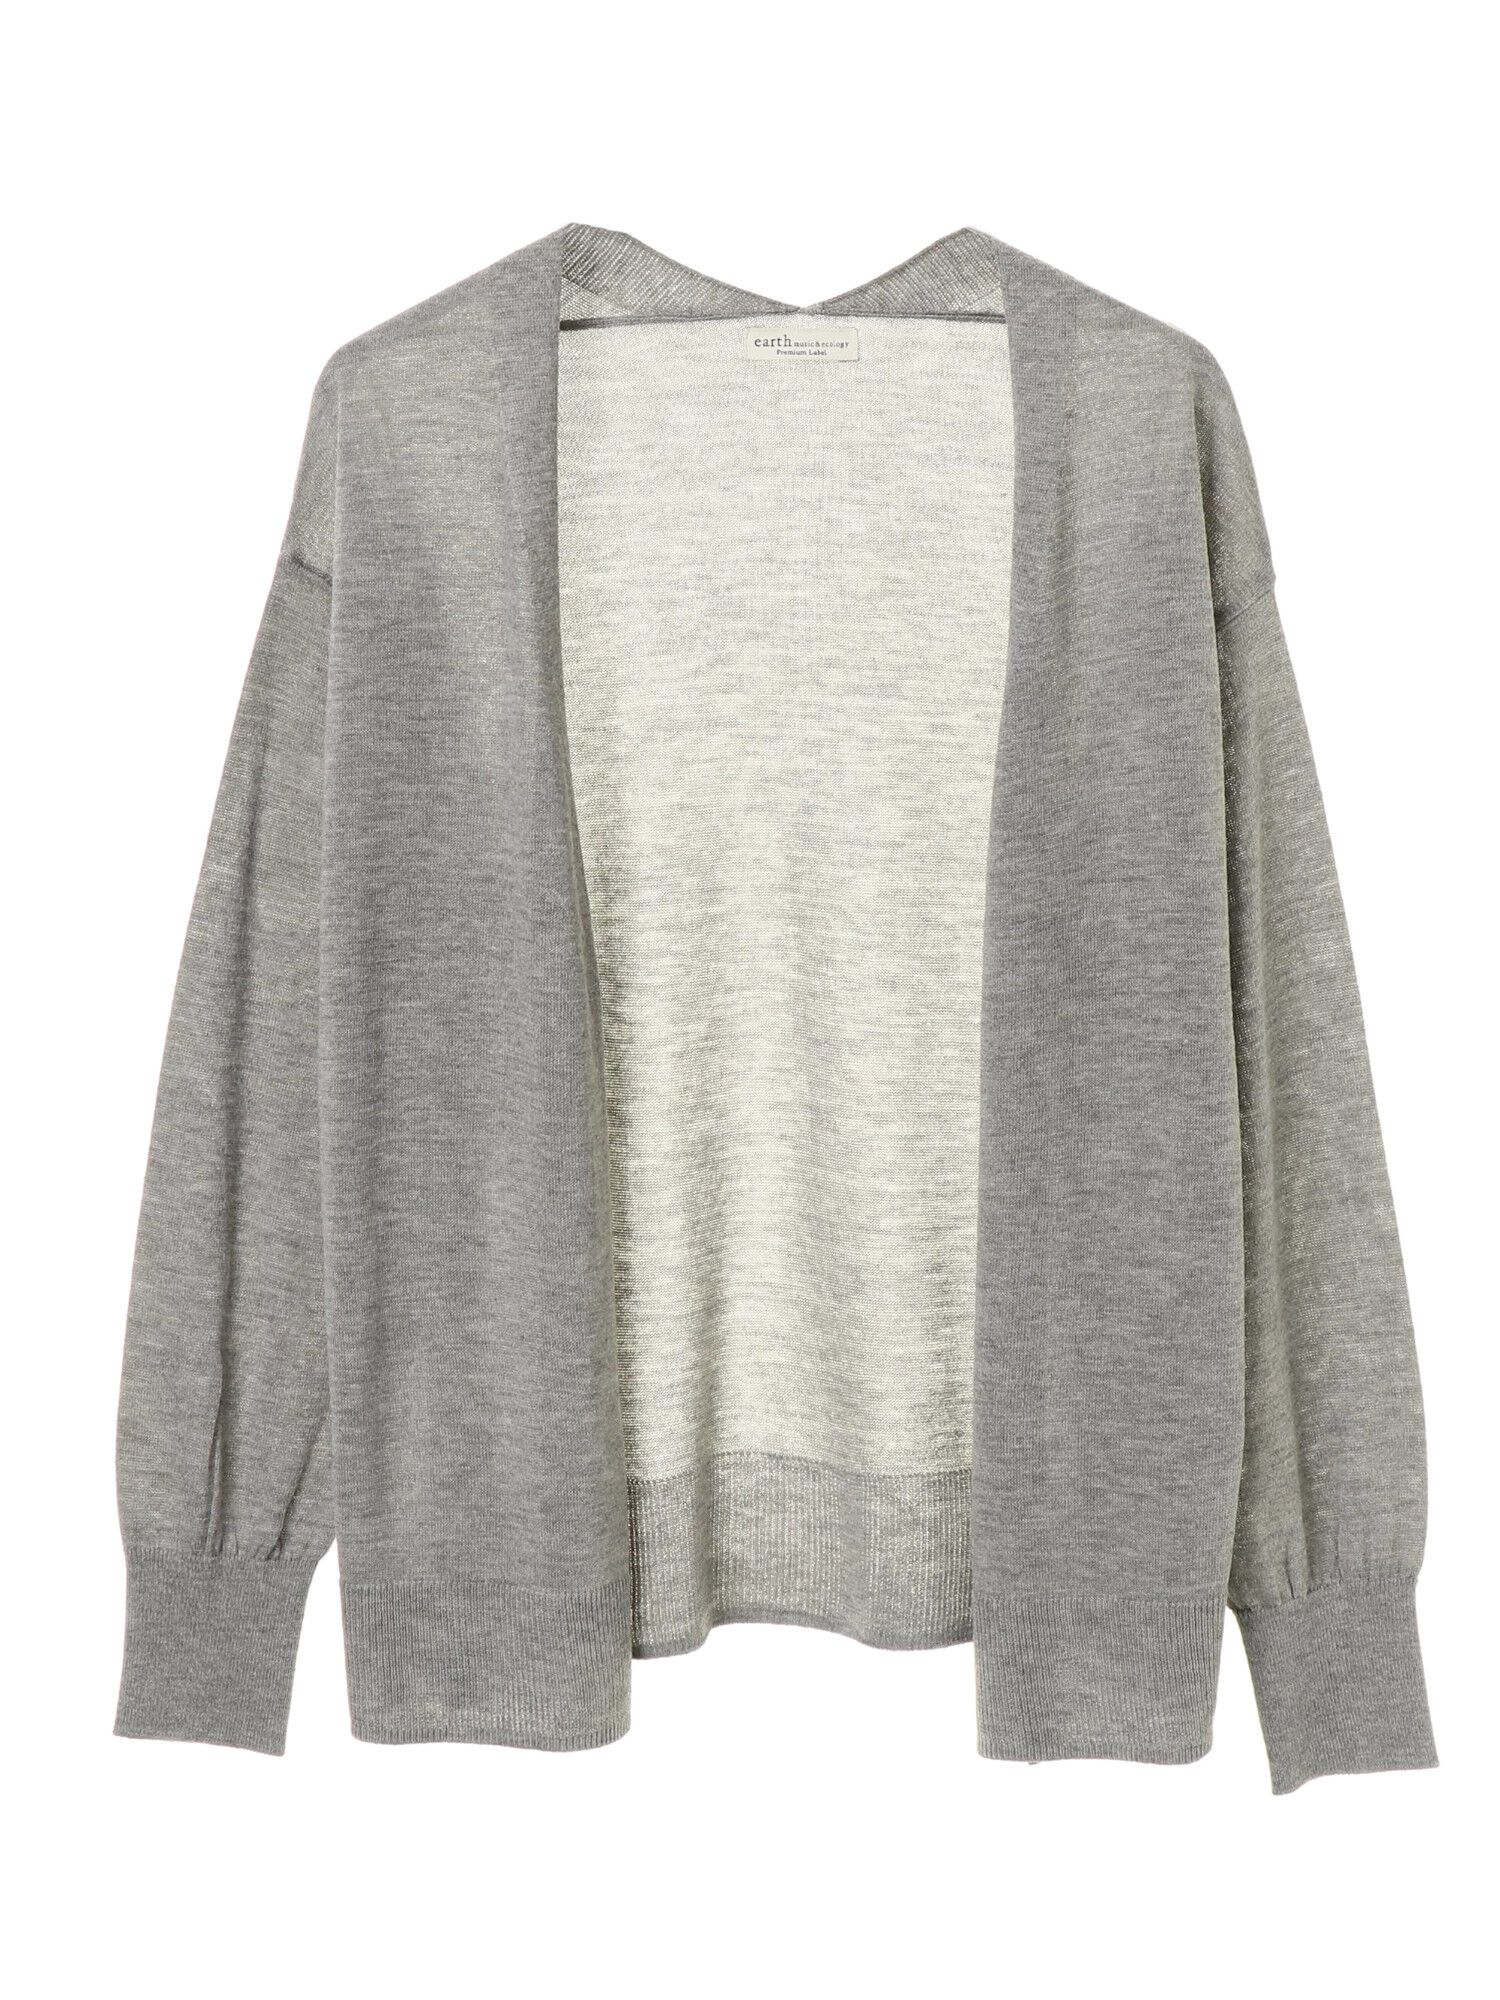 Earth, Music & Ecology Clyvon Cardigan - Gray Mixture